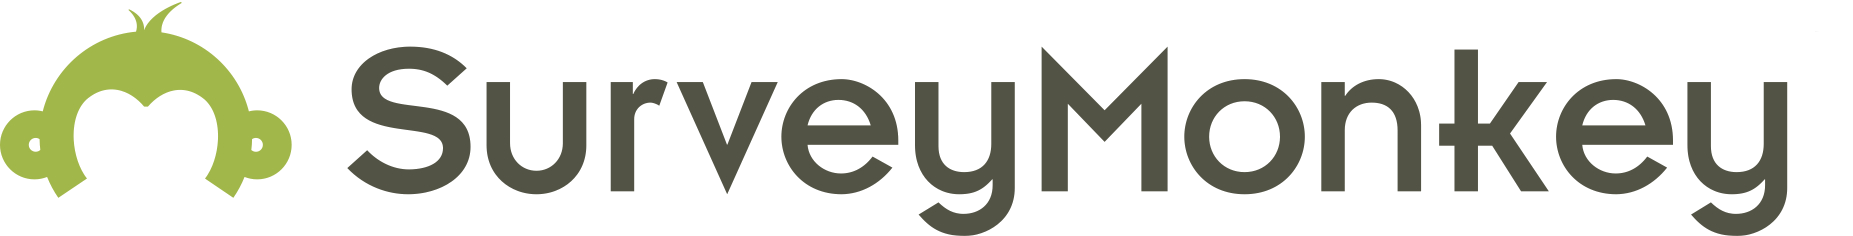 Surveymonkey_logo